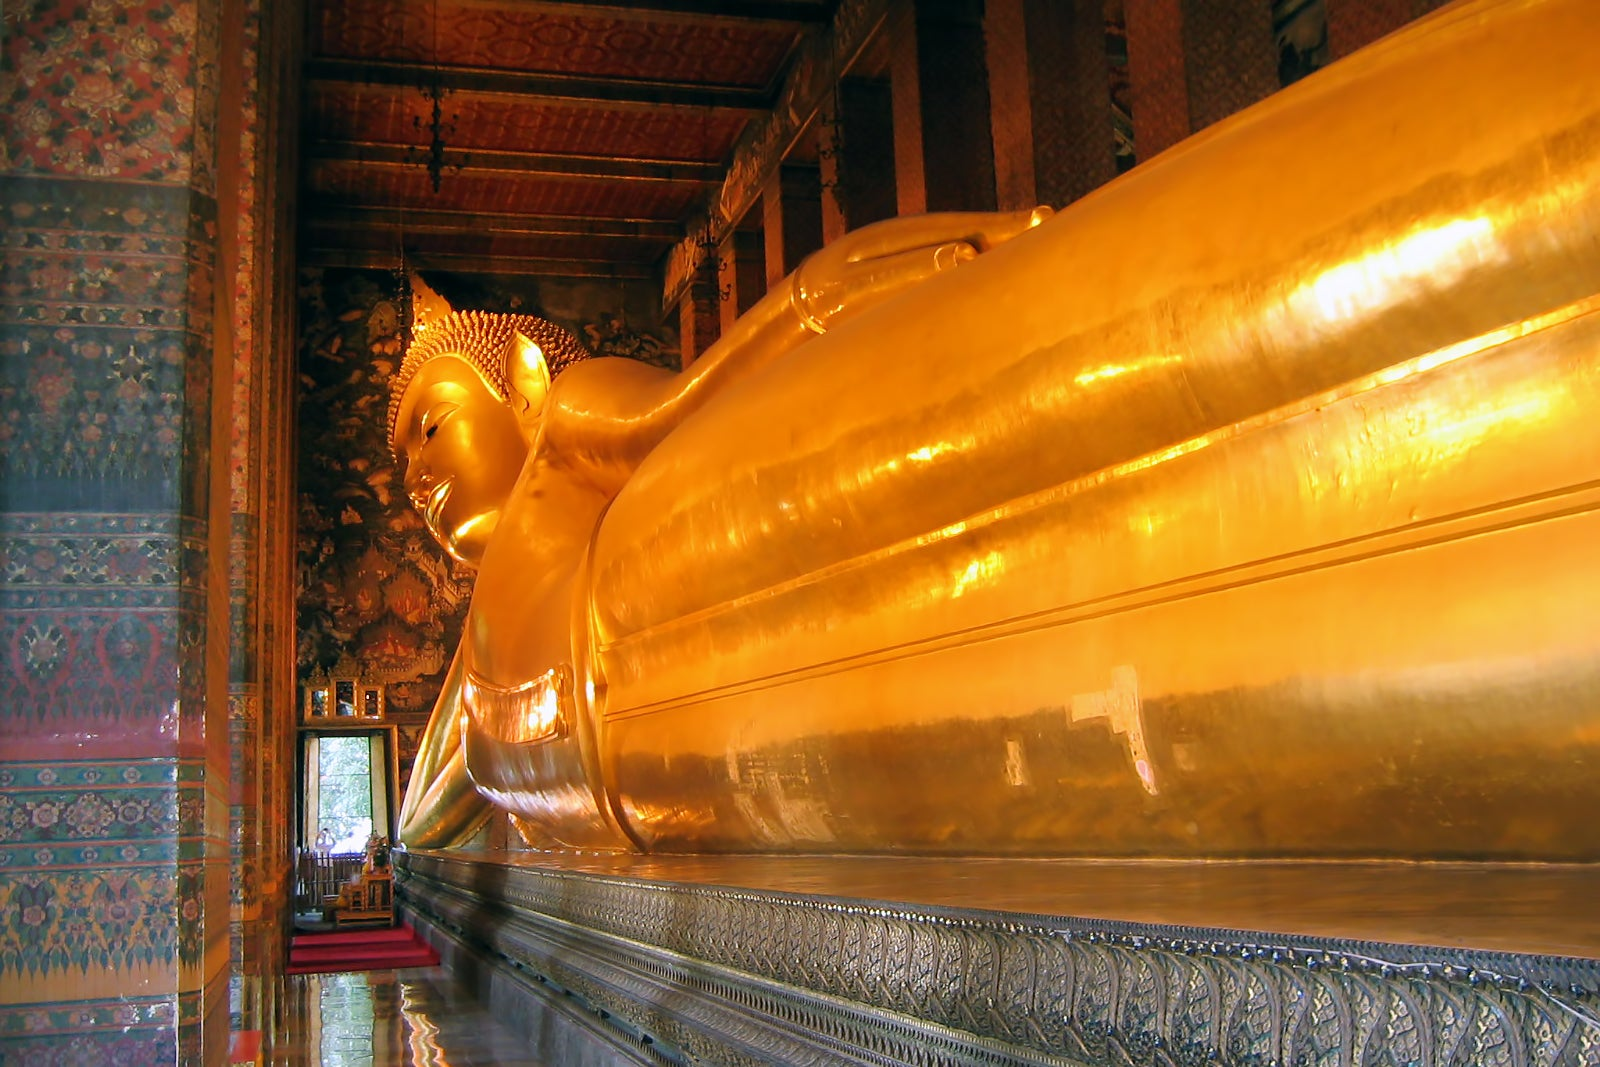 Wat Pho in Bangkok - The Temple of the Reclining Buddha